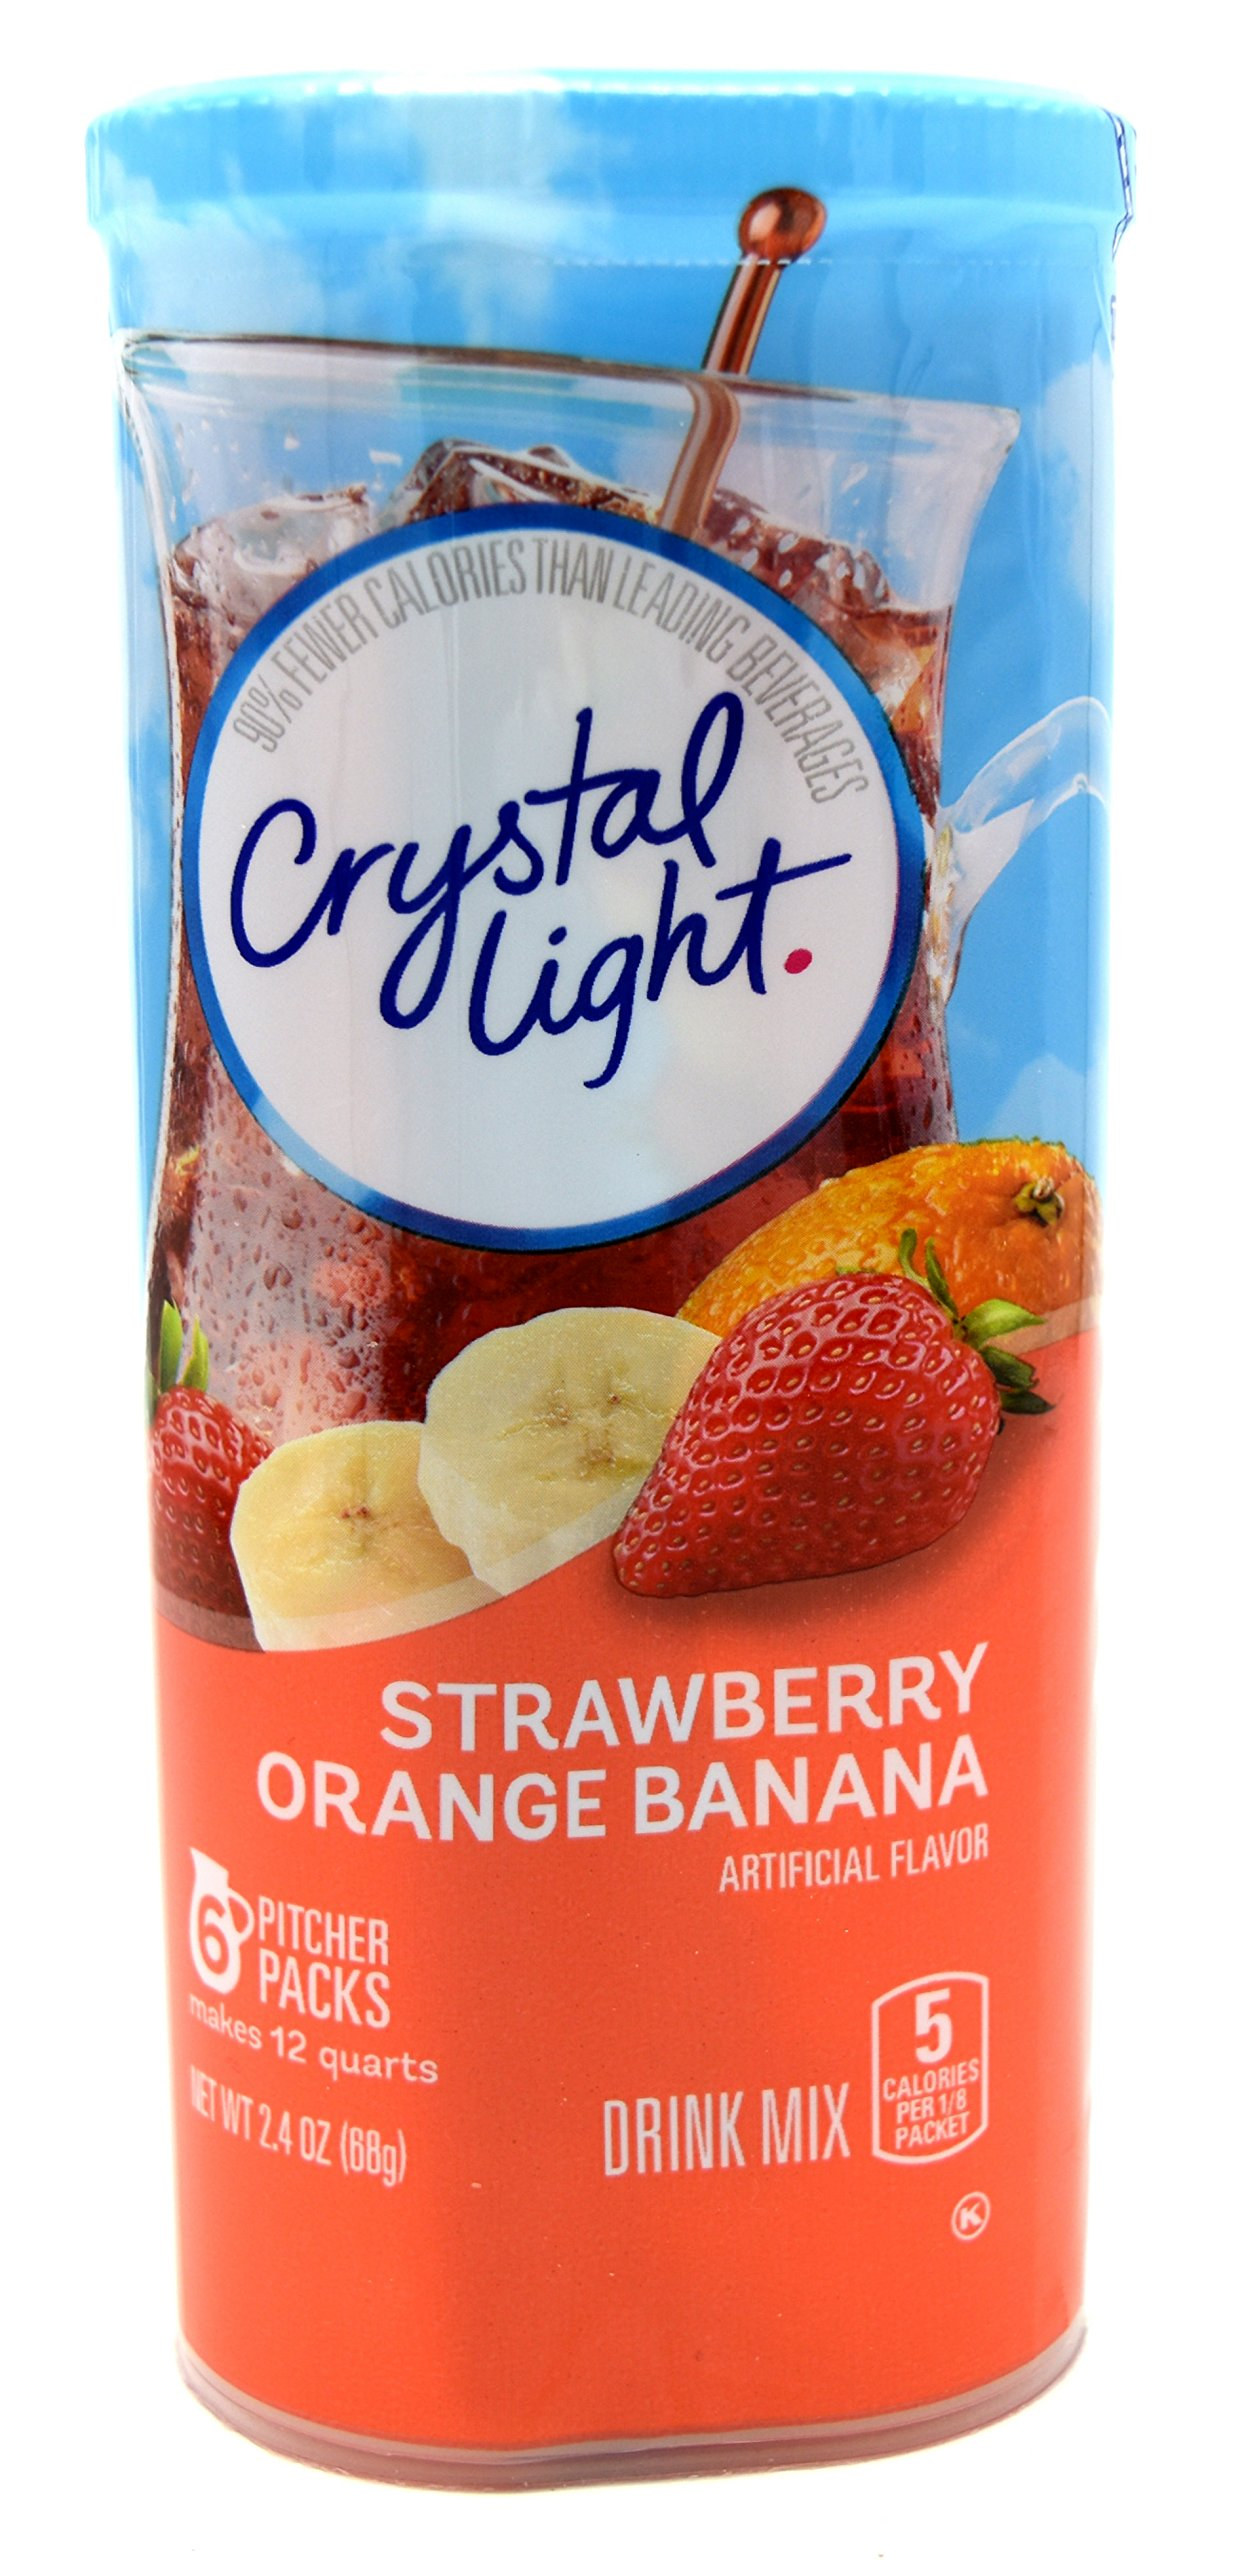 Crystal Light Strawberry Orange Banana Drink Mix, 12-Quart 2.4-Ounce Canister (Pack of 7)